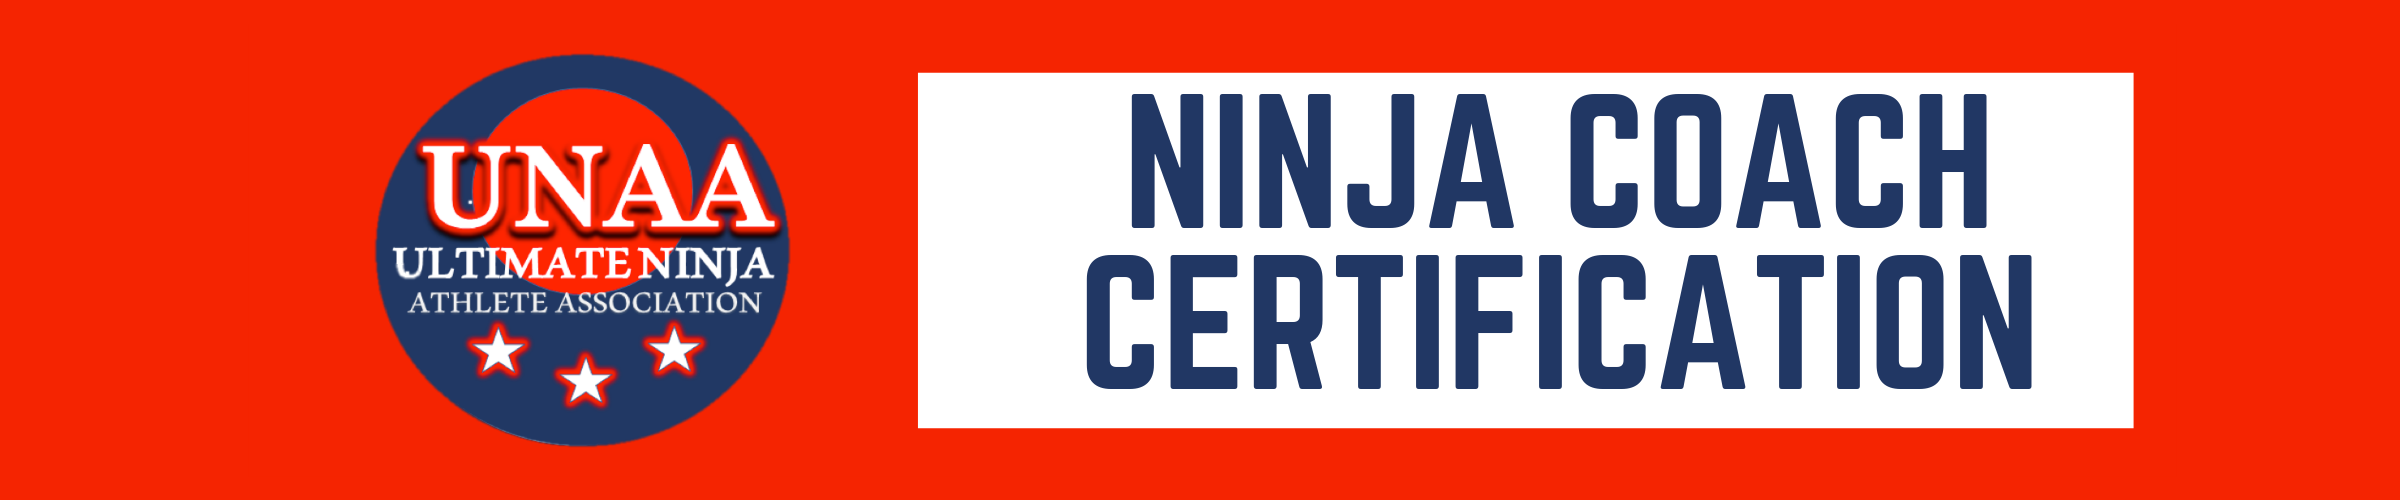 World OCR - OCR Ninja Coach Certification